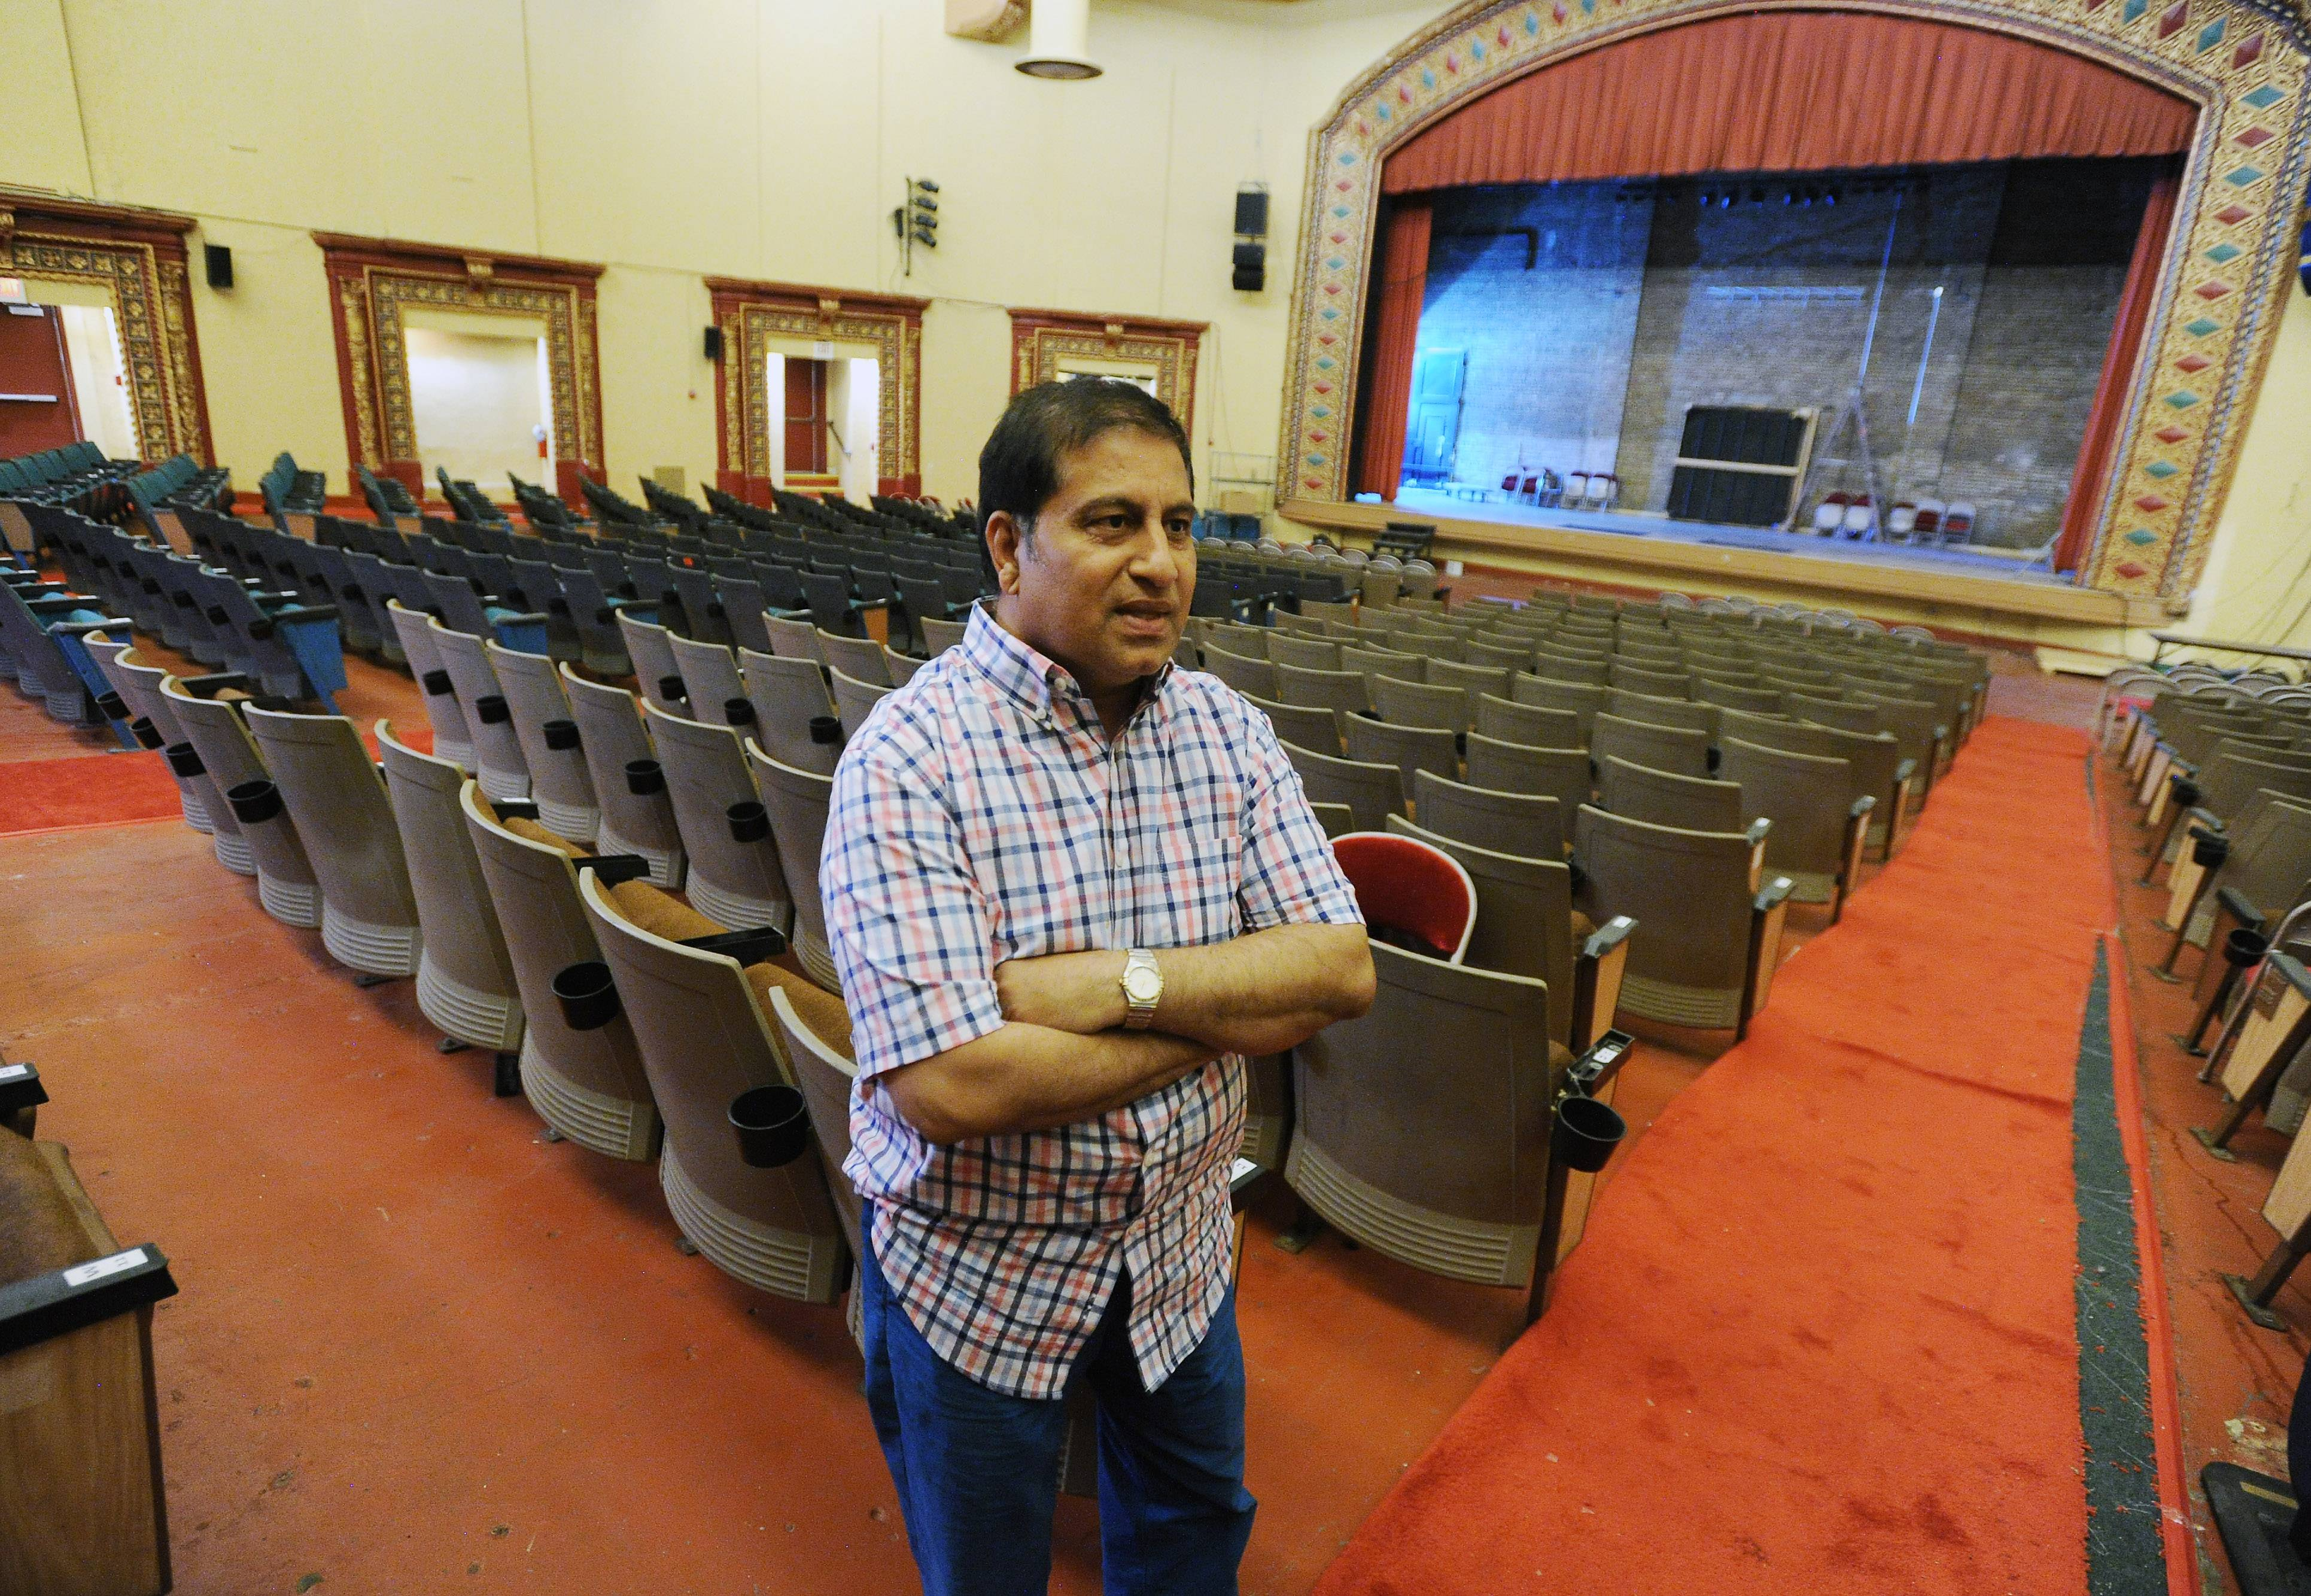 Des Plaines Theatre owner Dhitu Bhagwakar says he declined a $450,000 offer from the city to purchase the 92-year-old building. That, in turn, has led the city to pursue condemnation proceedings.